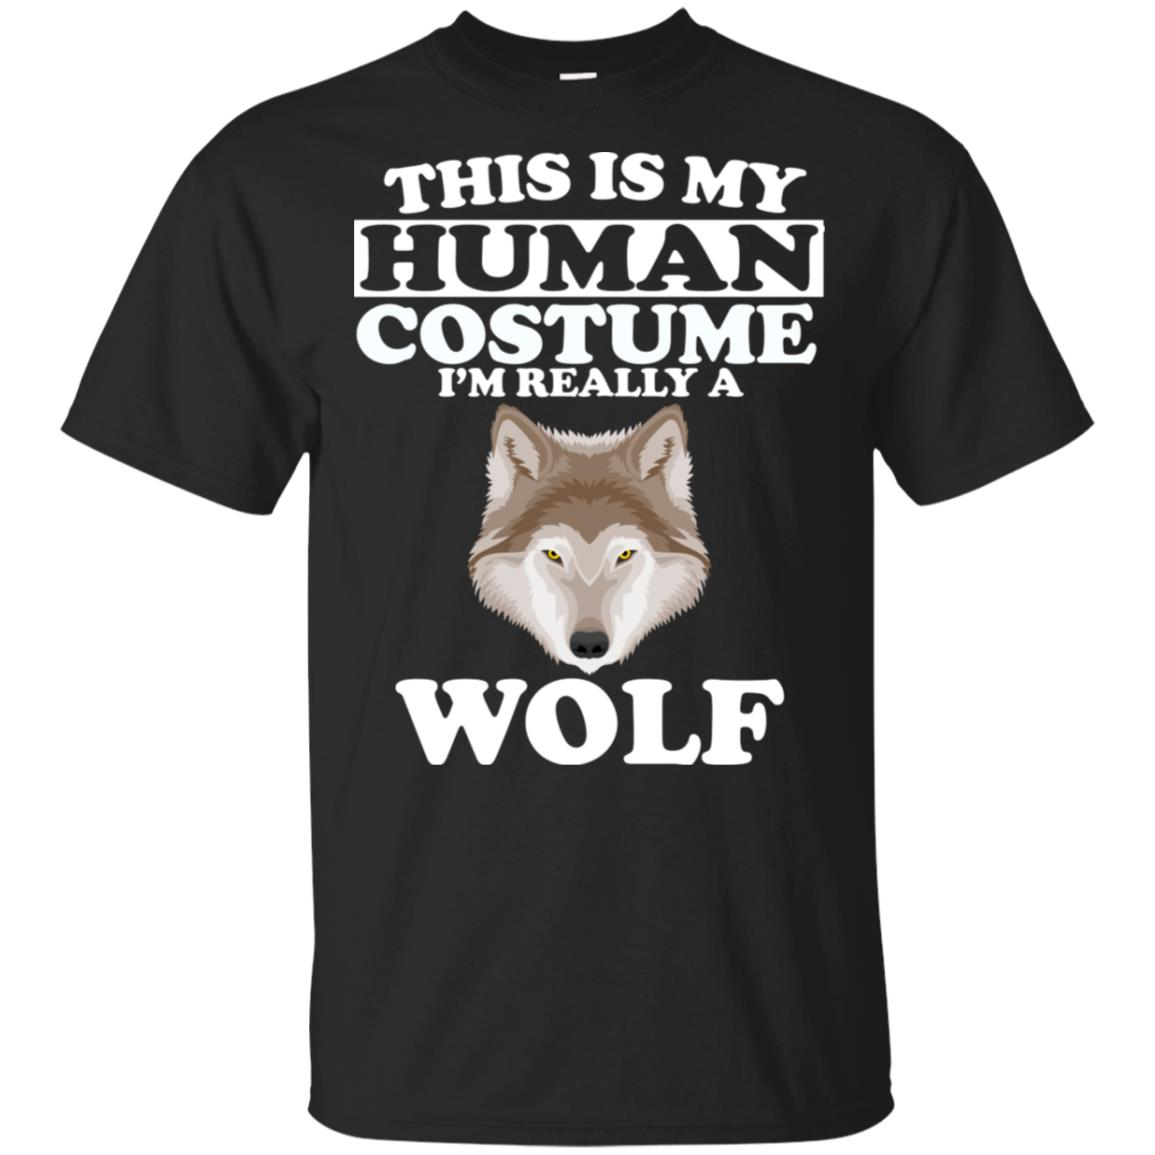 This is My Human Costume I'm Really A Wolf Unisex Short Sleeve